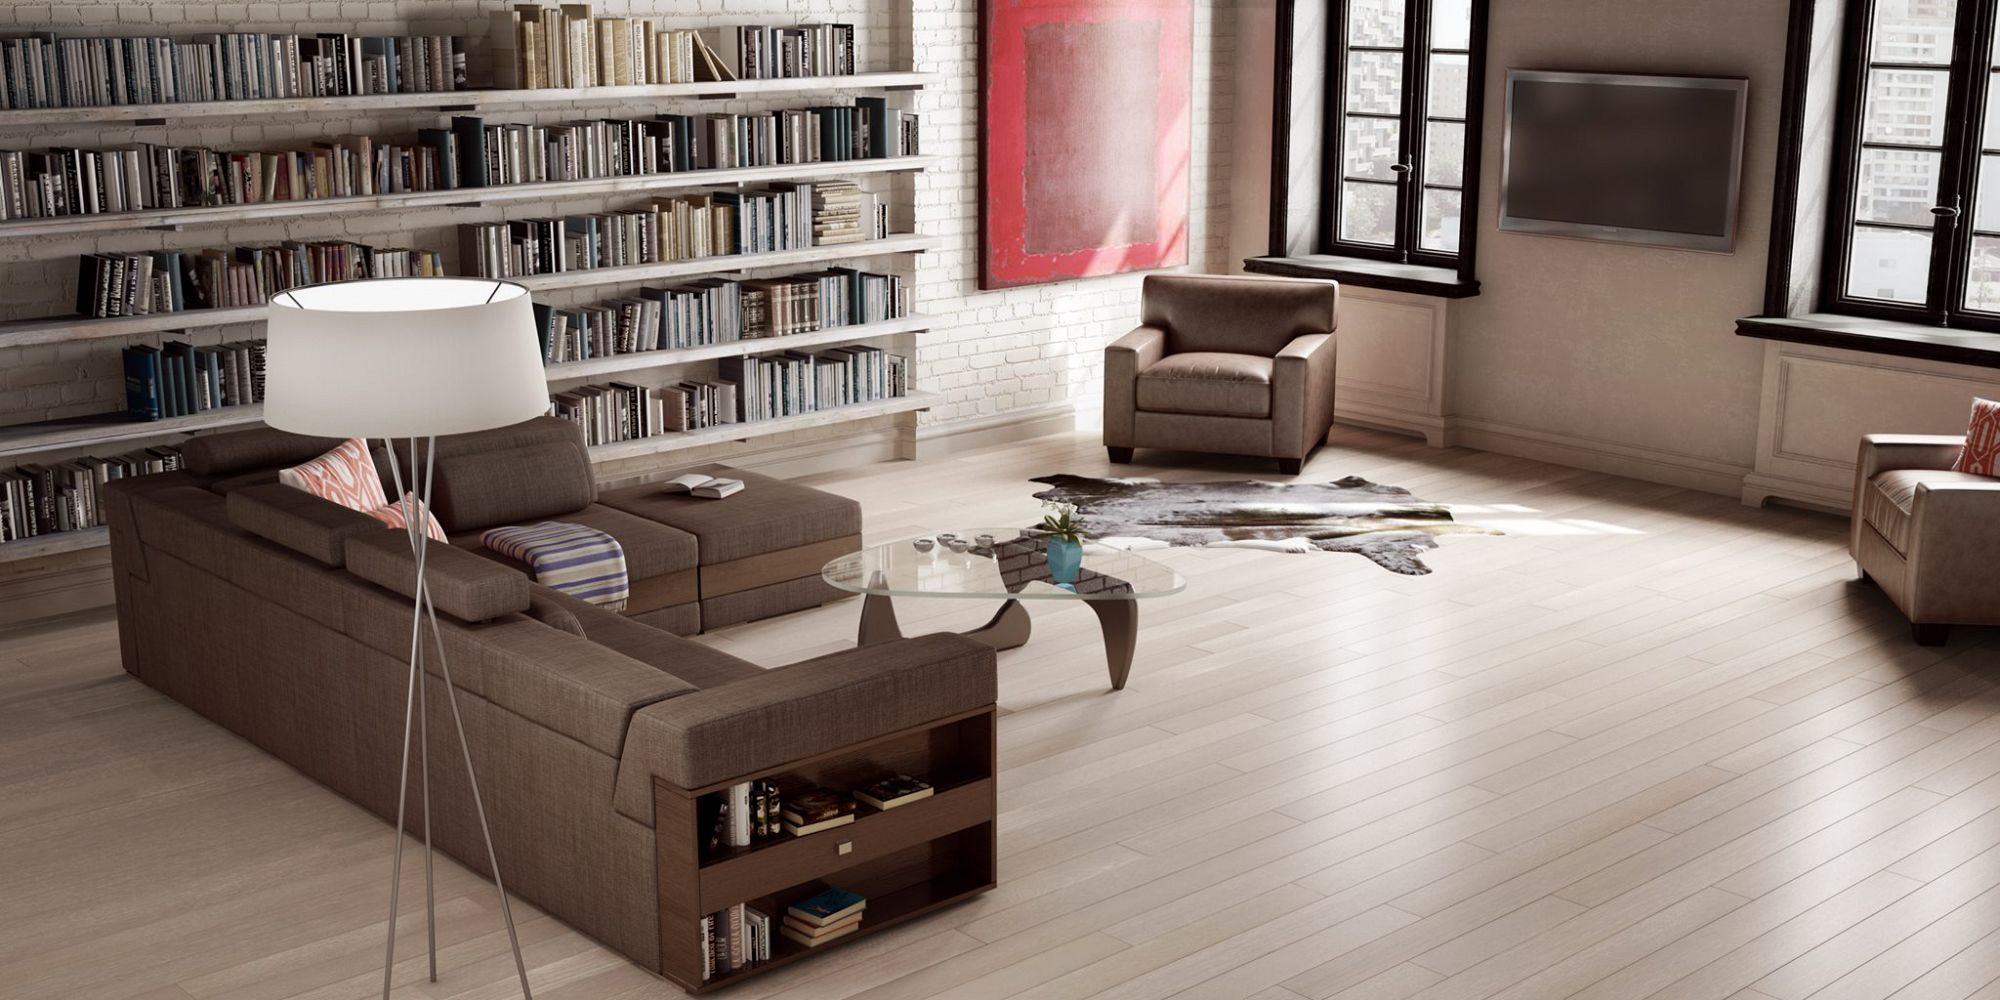 images of wood floors in living rooms room decoration ideas hardwood flooring selection at smalls